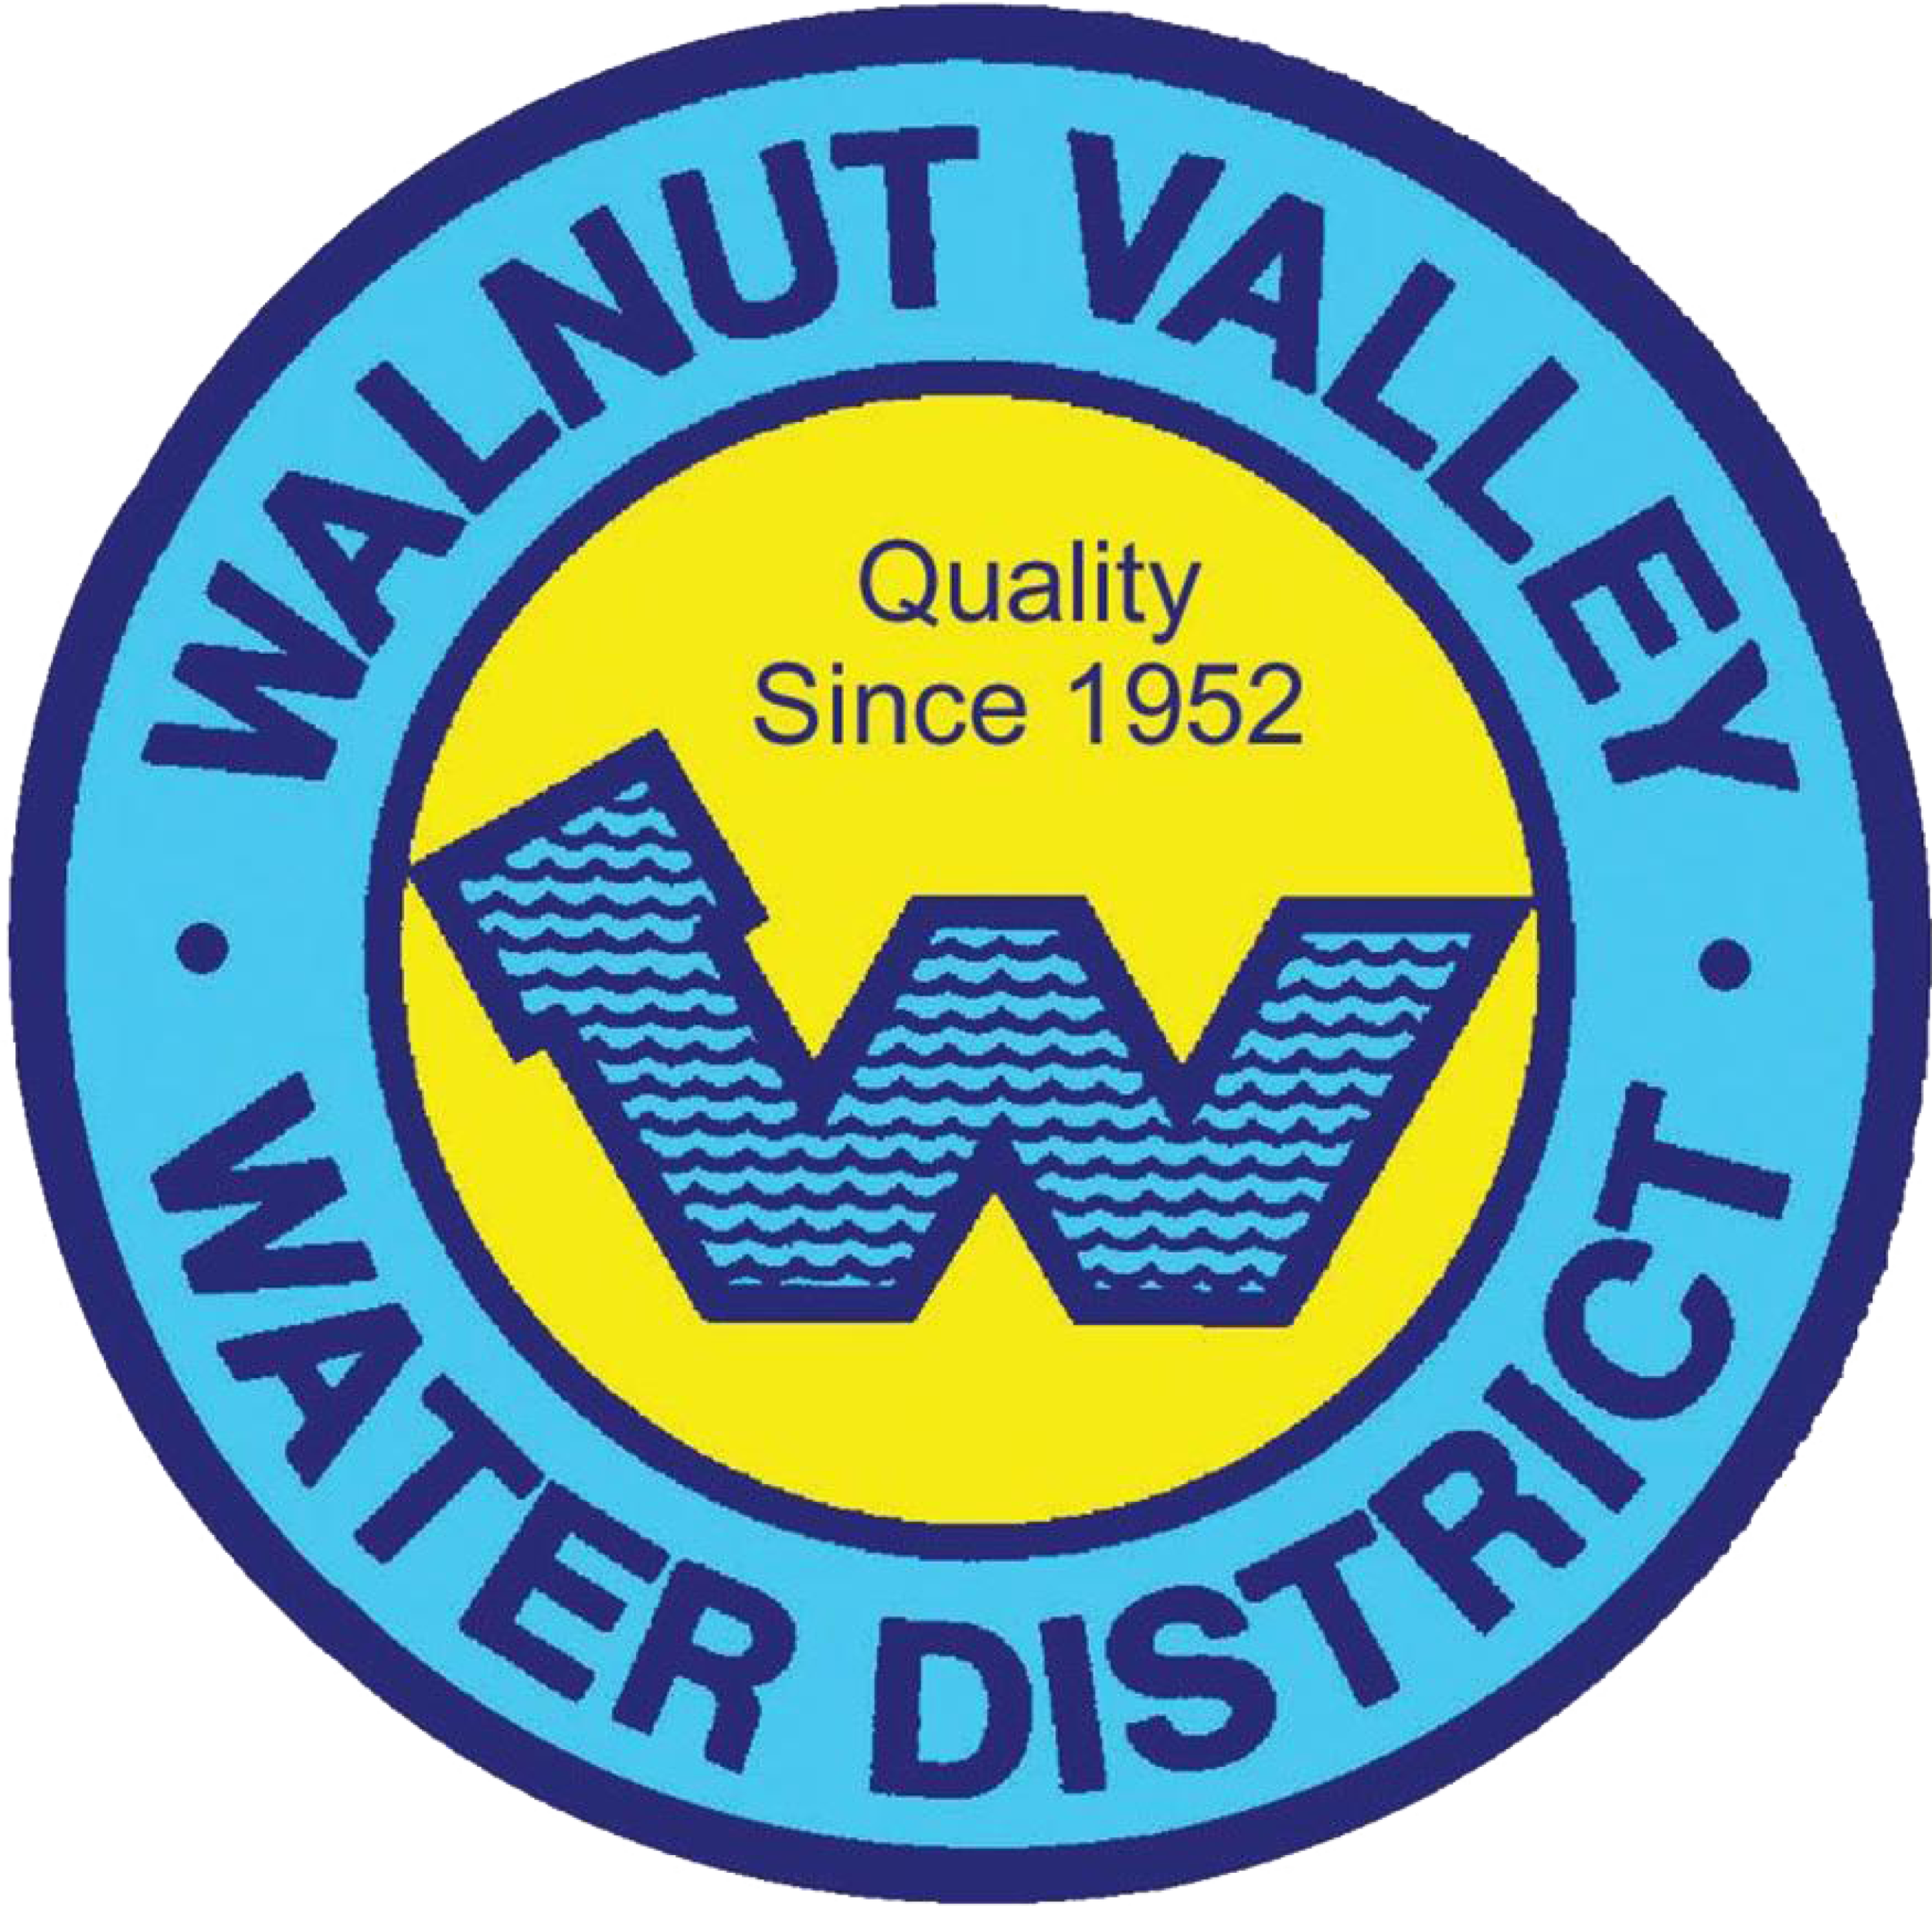 walnut-valley.png